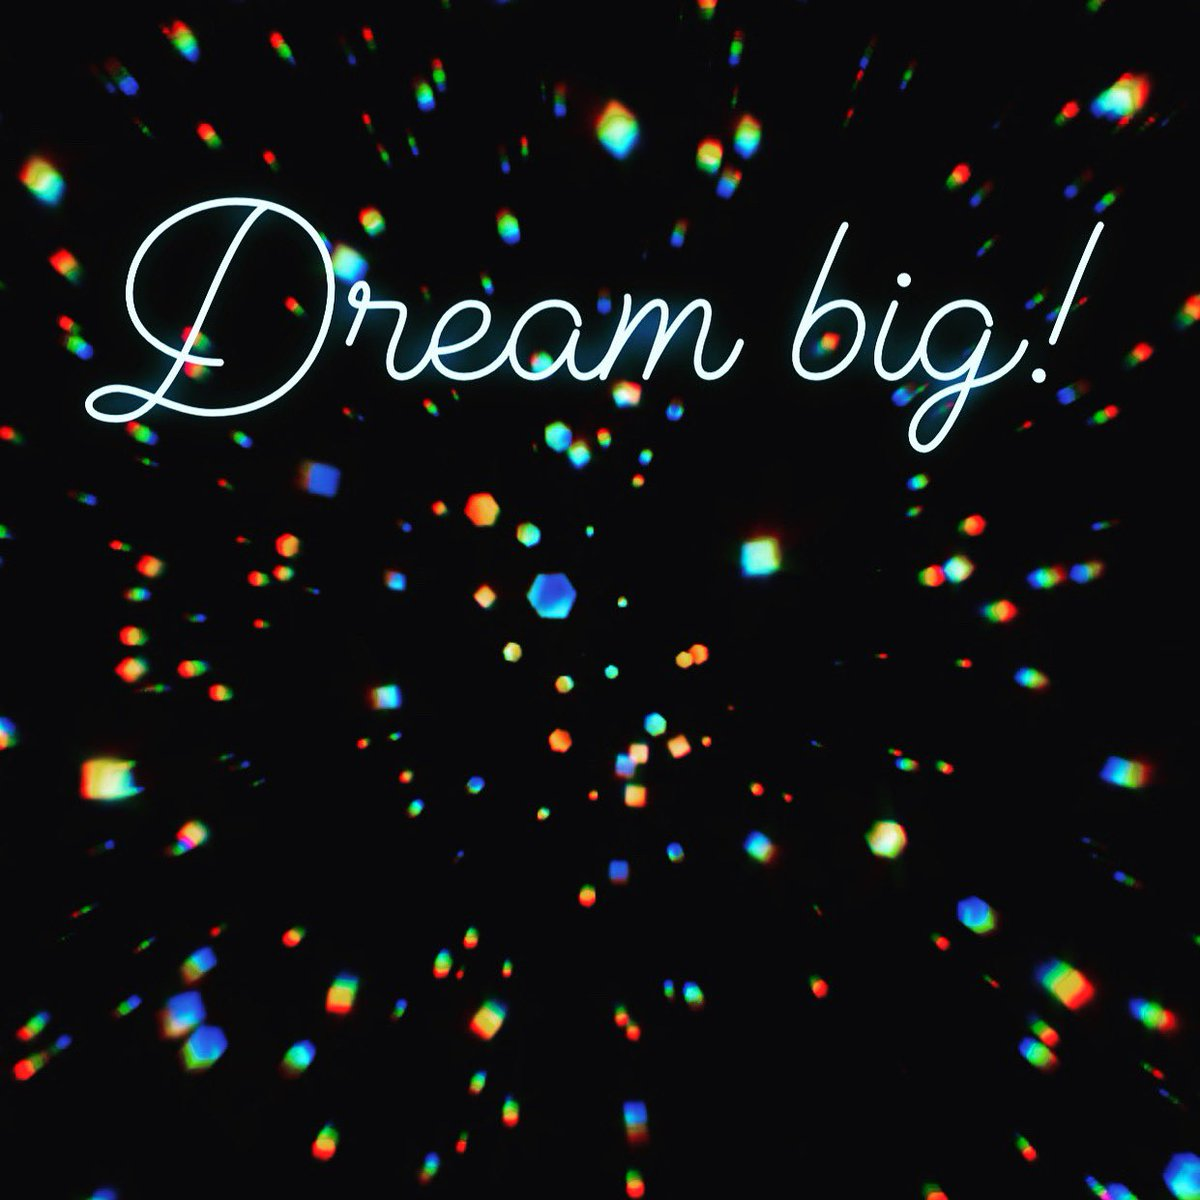 Ok kids let's do this thing right! #Monday  #Inspiration #mondaymotovation #DreamBig #SuccessTRAIN<br>http://pic.twitter.com/OHg1ZftG5M